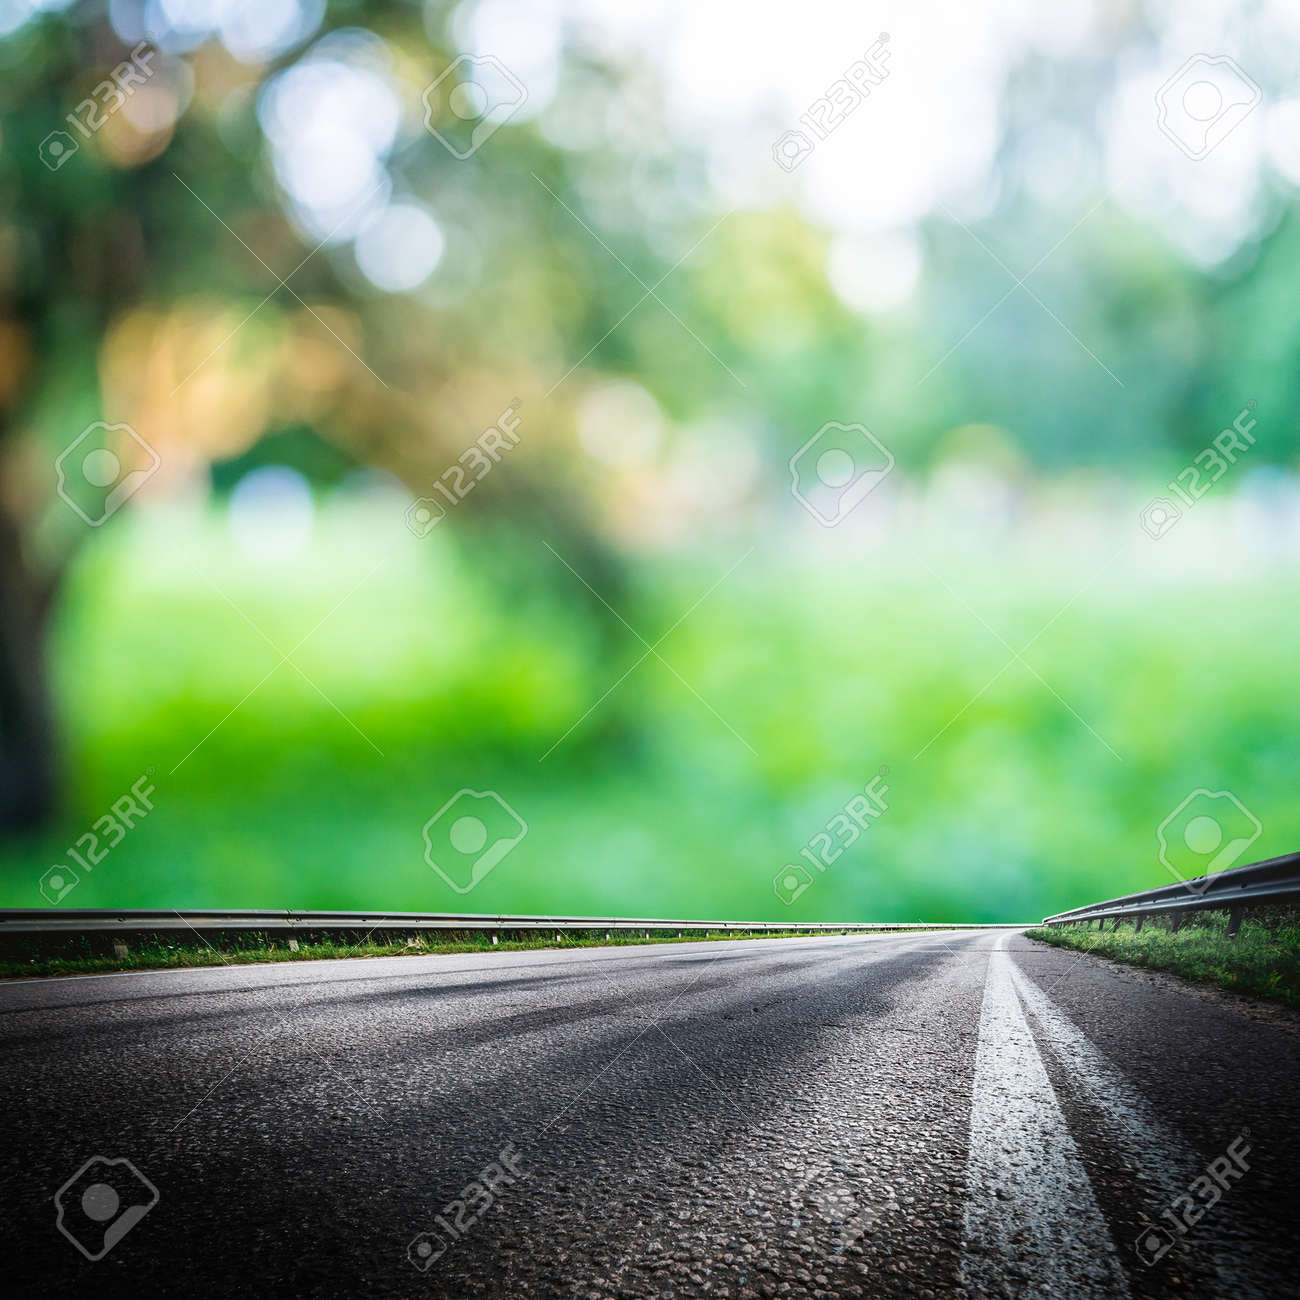 Green Forest Road Background Asphalt And Blurred Park Stock Photo Picture And Royalty Free Image Image 88784641